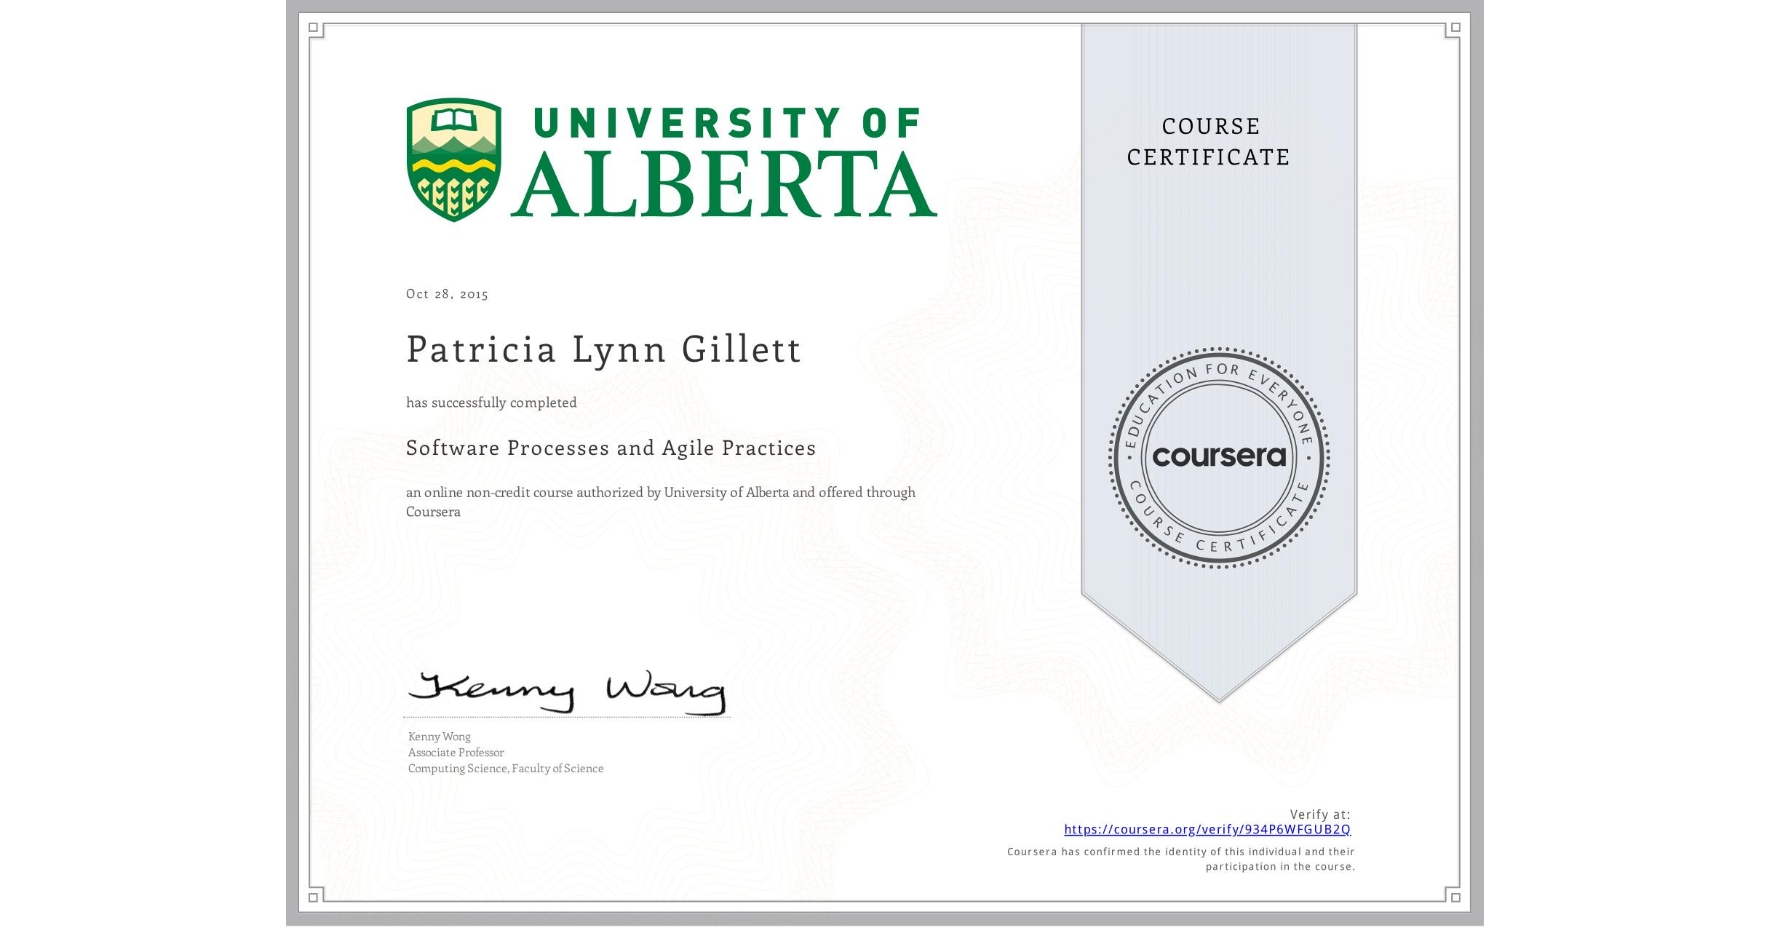 View certificate for Patricia Lynn Gillett, Software Processes and Agile Practices, an online non-credit course authorized by University of Alberta and offered through Coursera